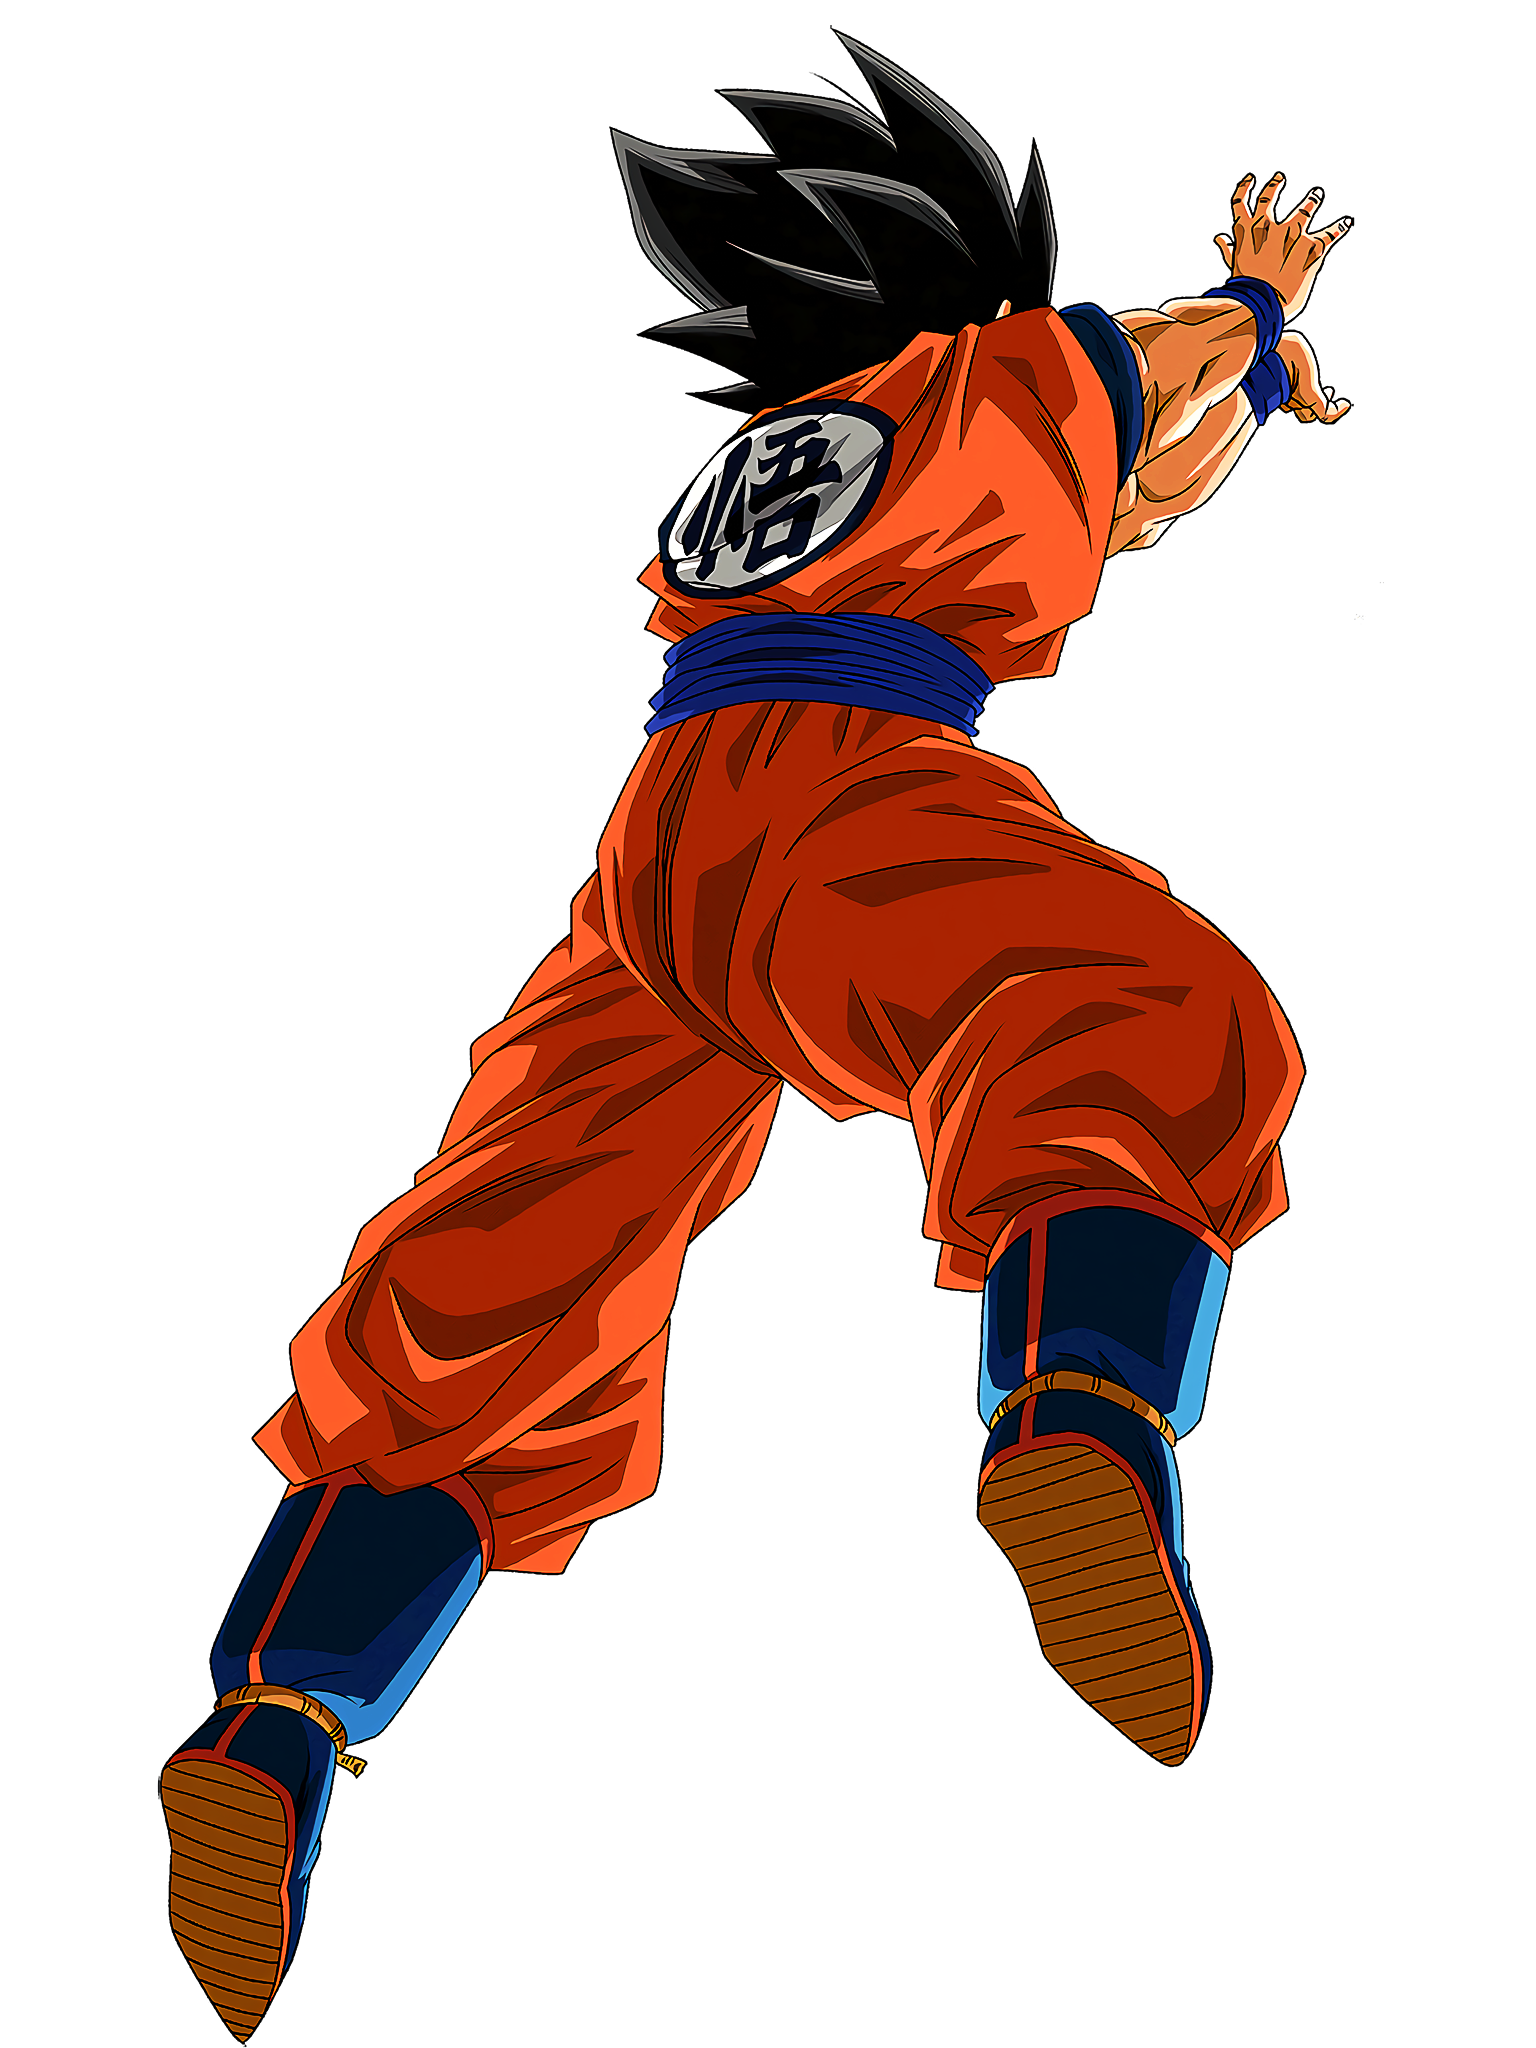 Goku Summon Animation 2 HD Render (Dragon Ball Z Dokkan Battle) .png